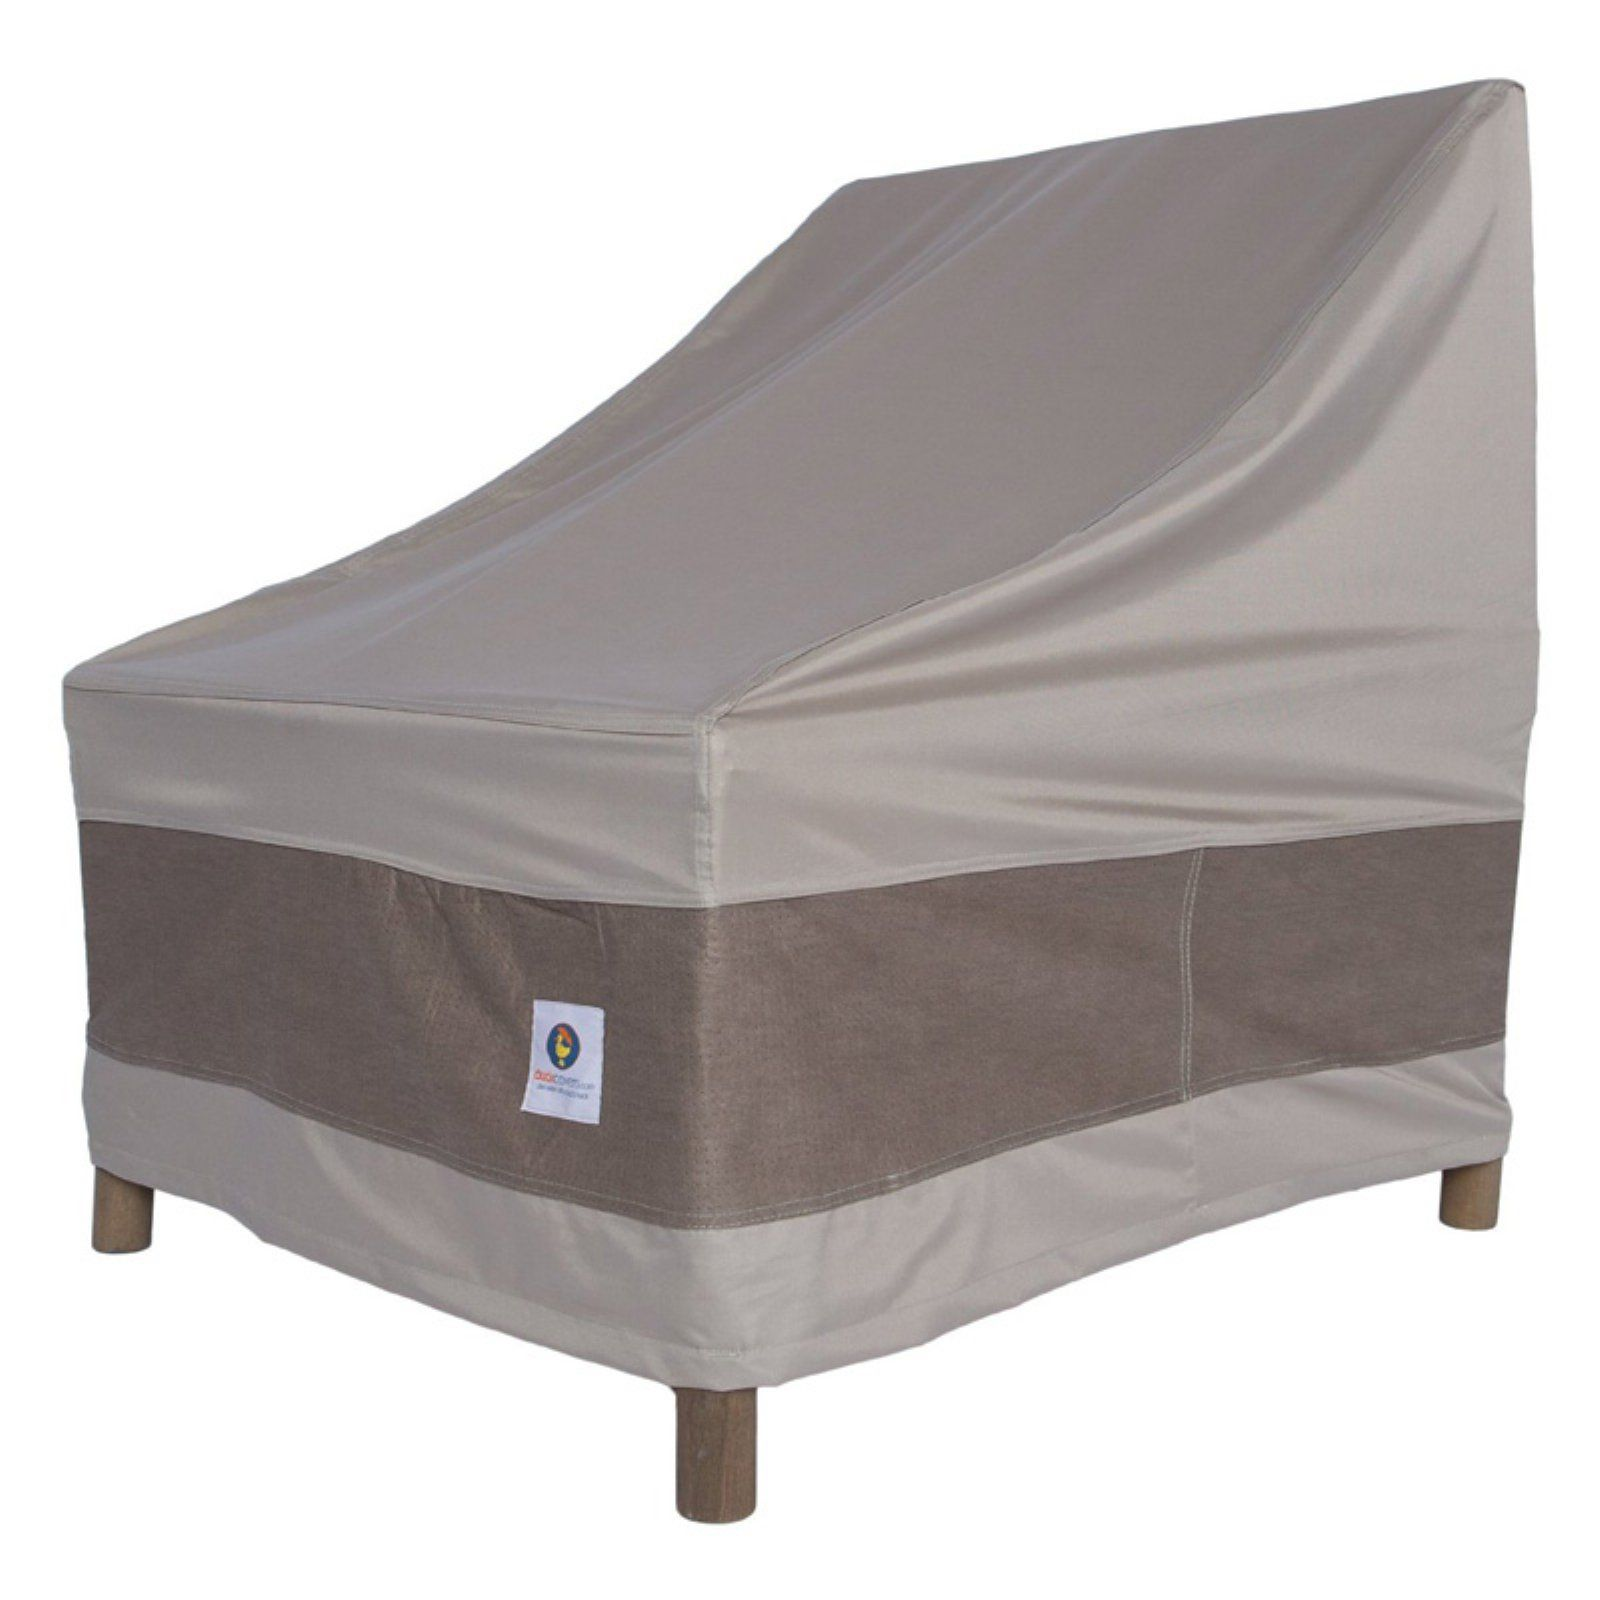 Duck Covers Elegant Stackable Patio Chair Cover Patio Chair